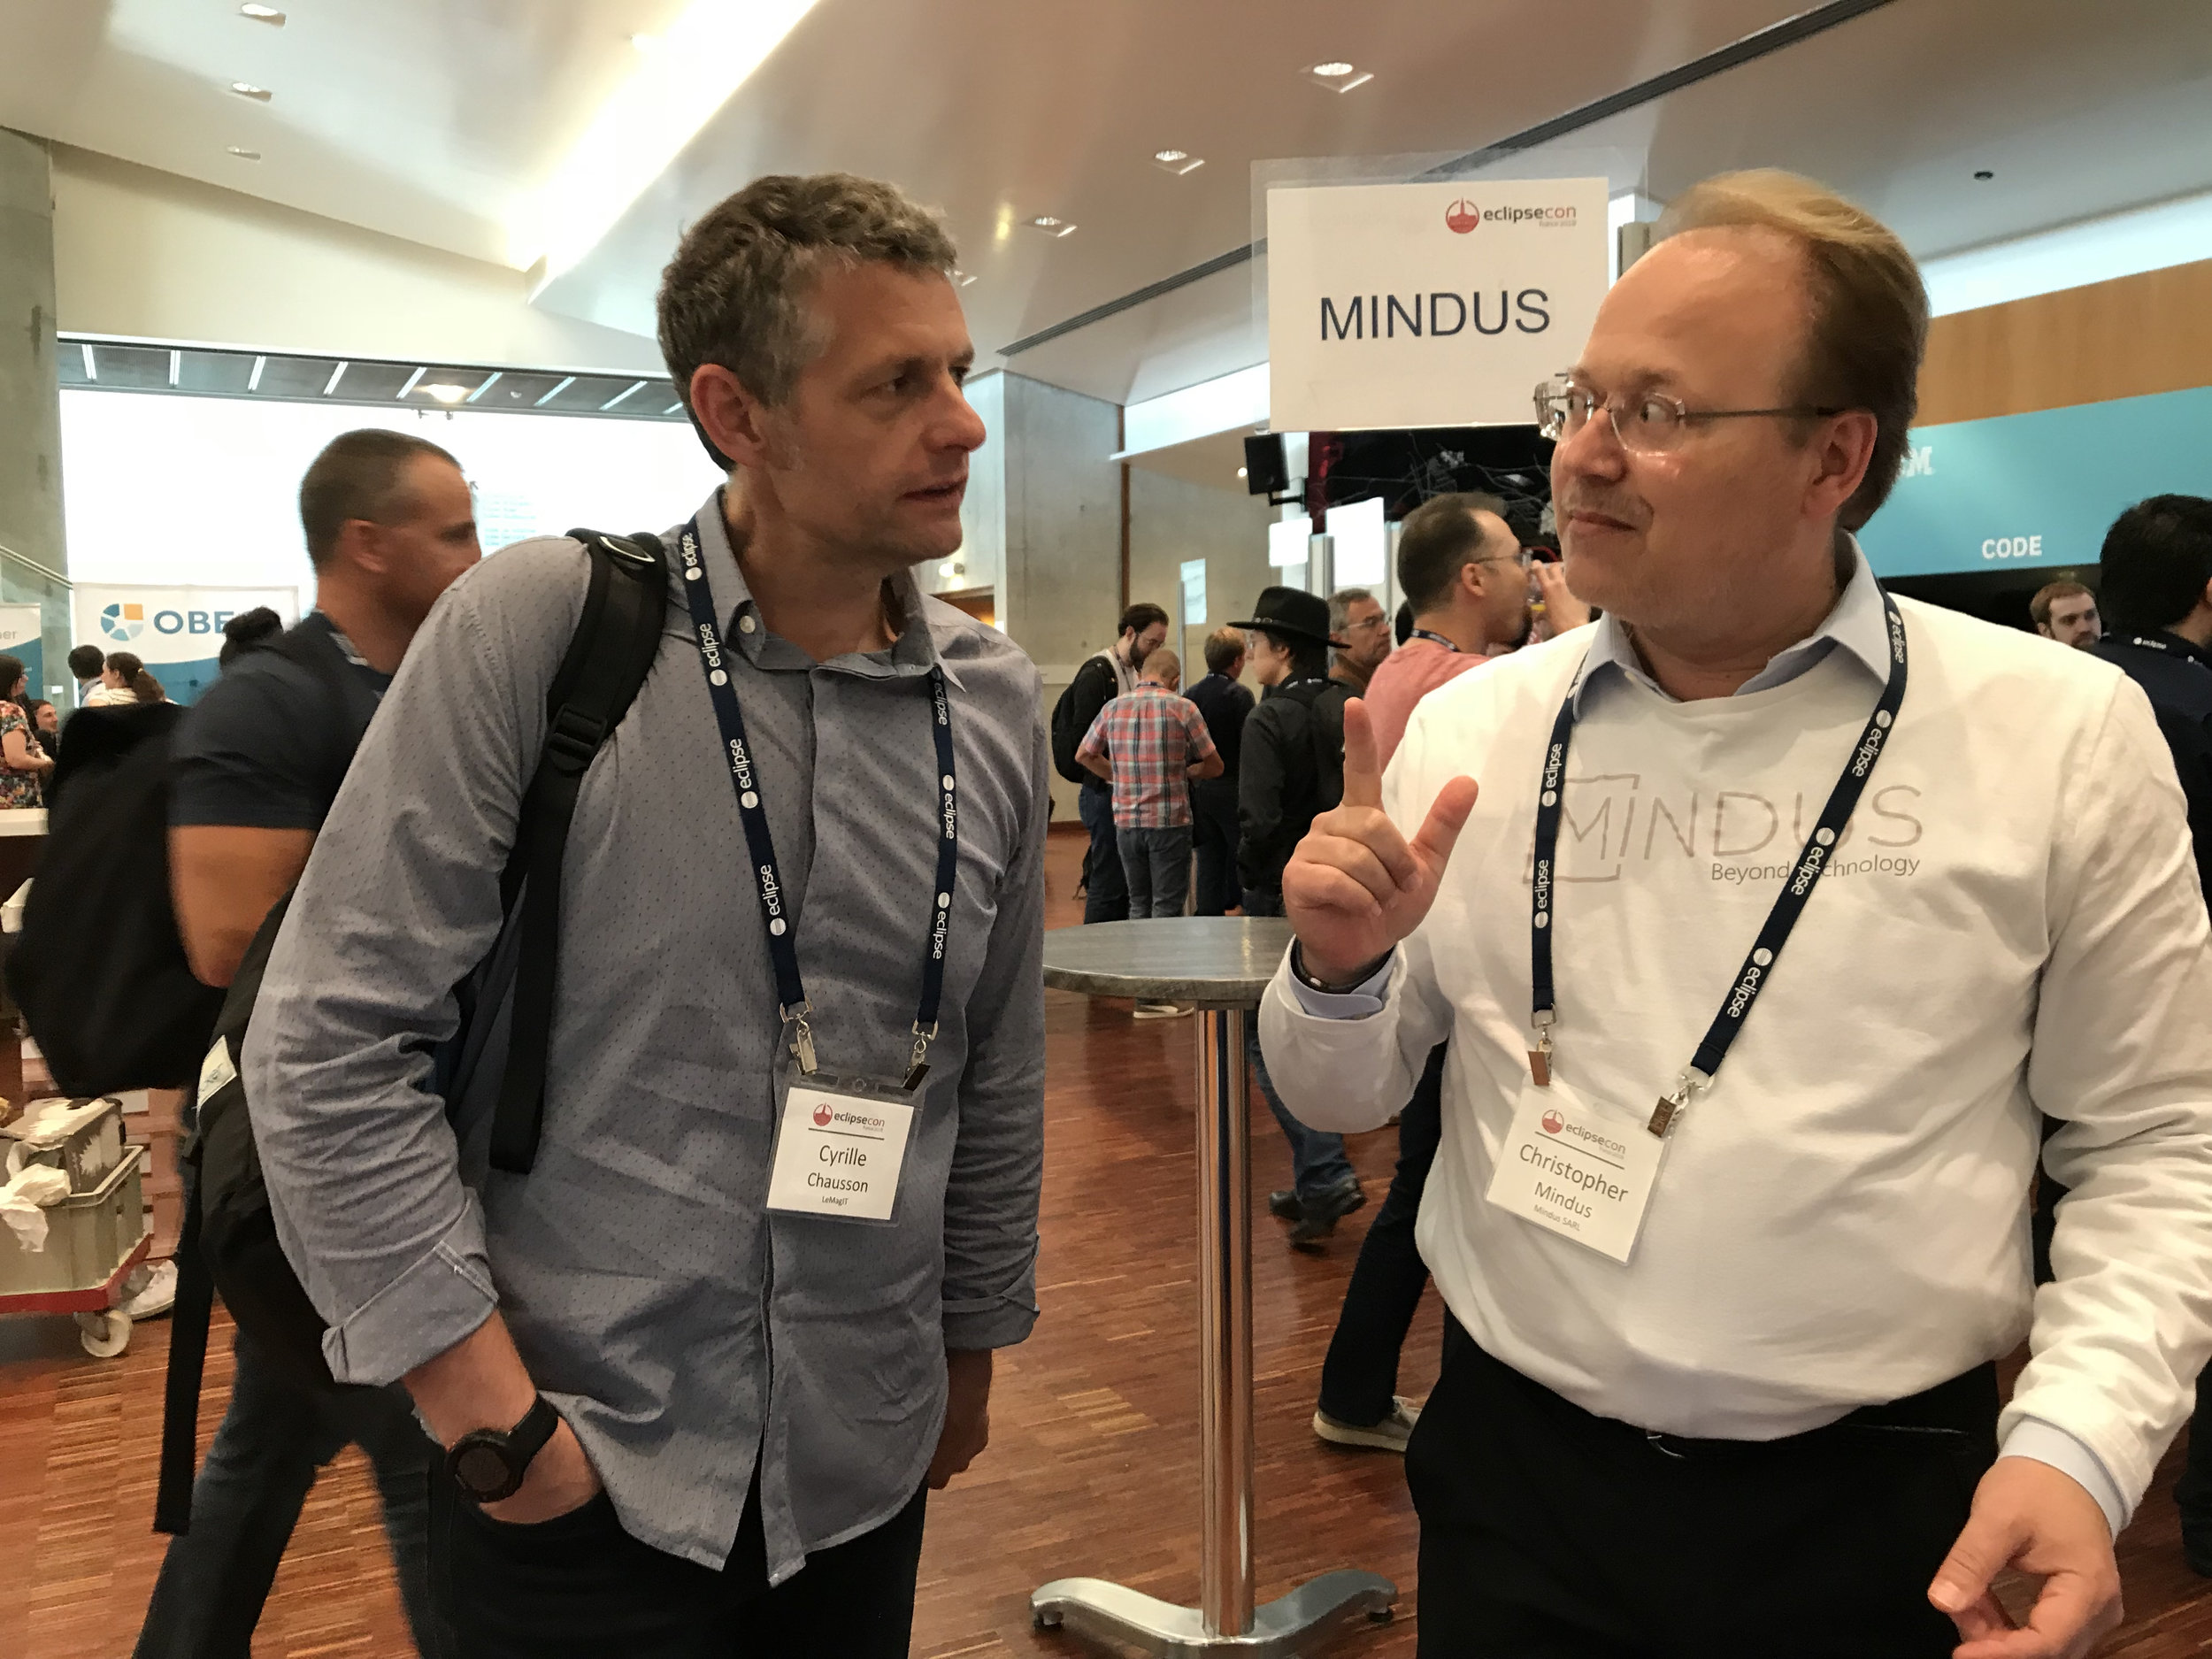 EclipseCon being covered by LeMagIT journalist Cyrille Chausson with Christopher Mindus